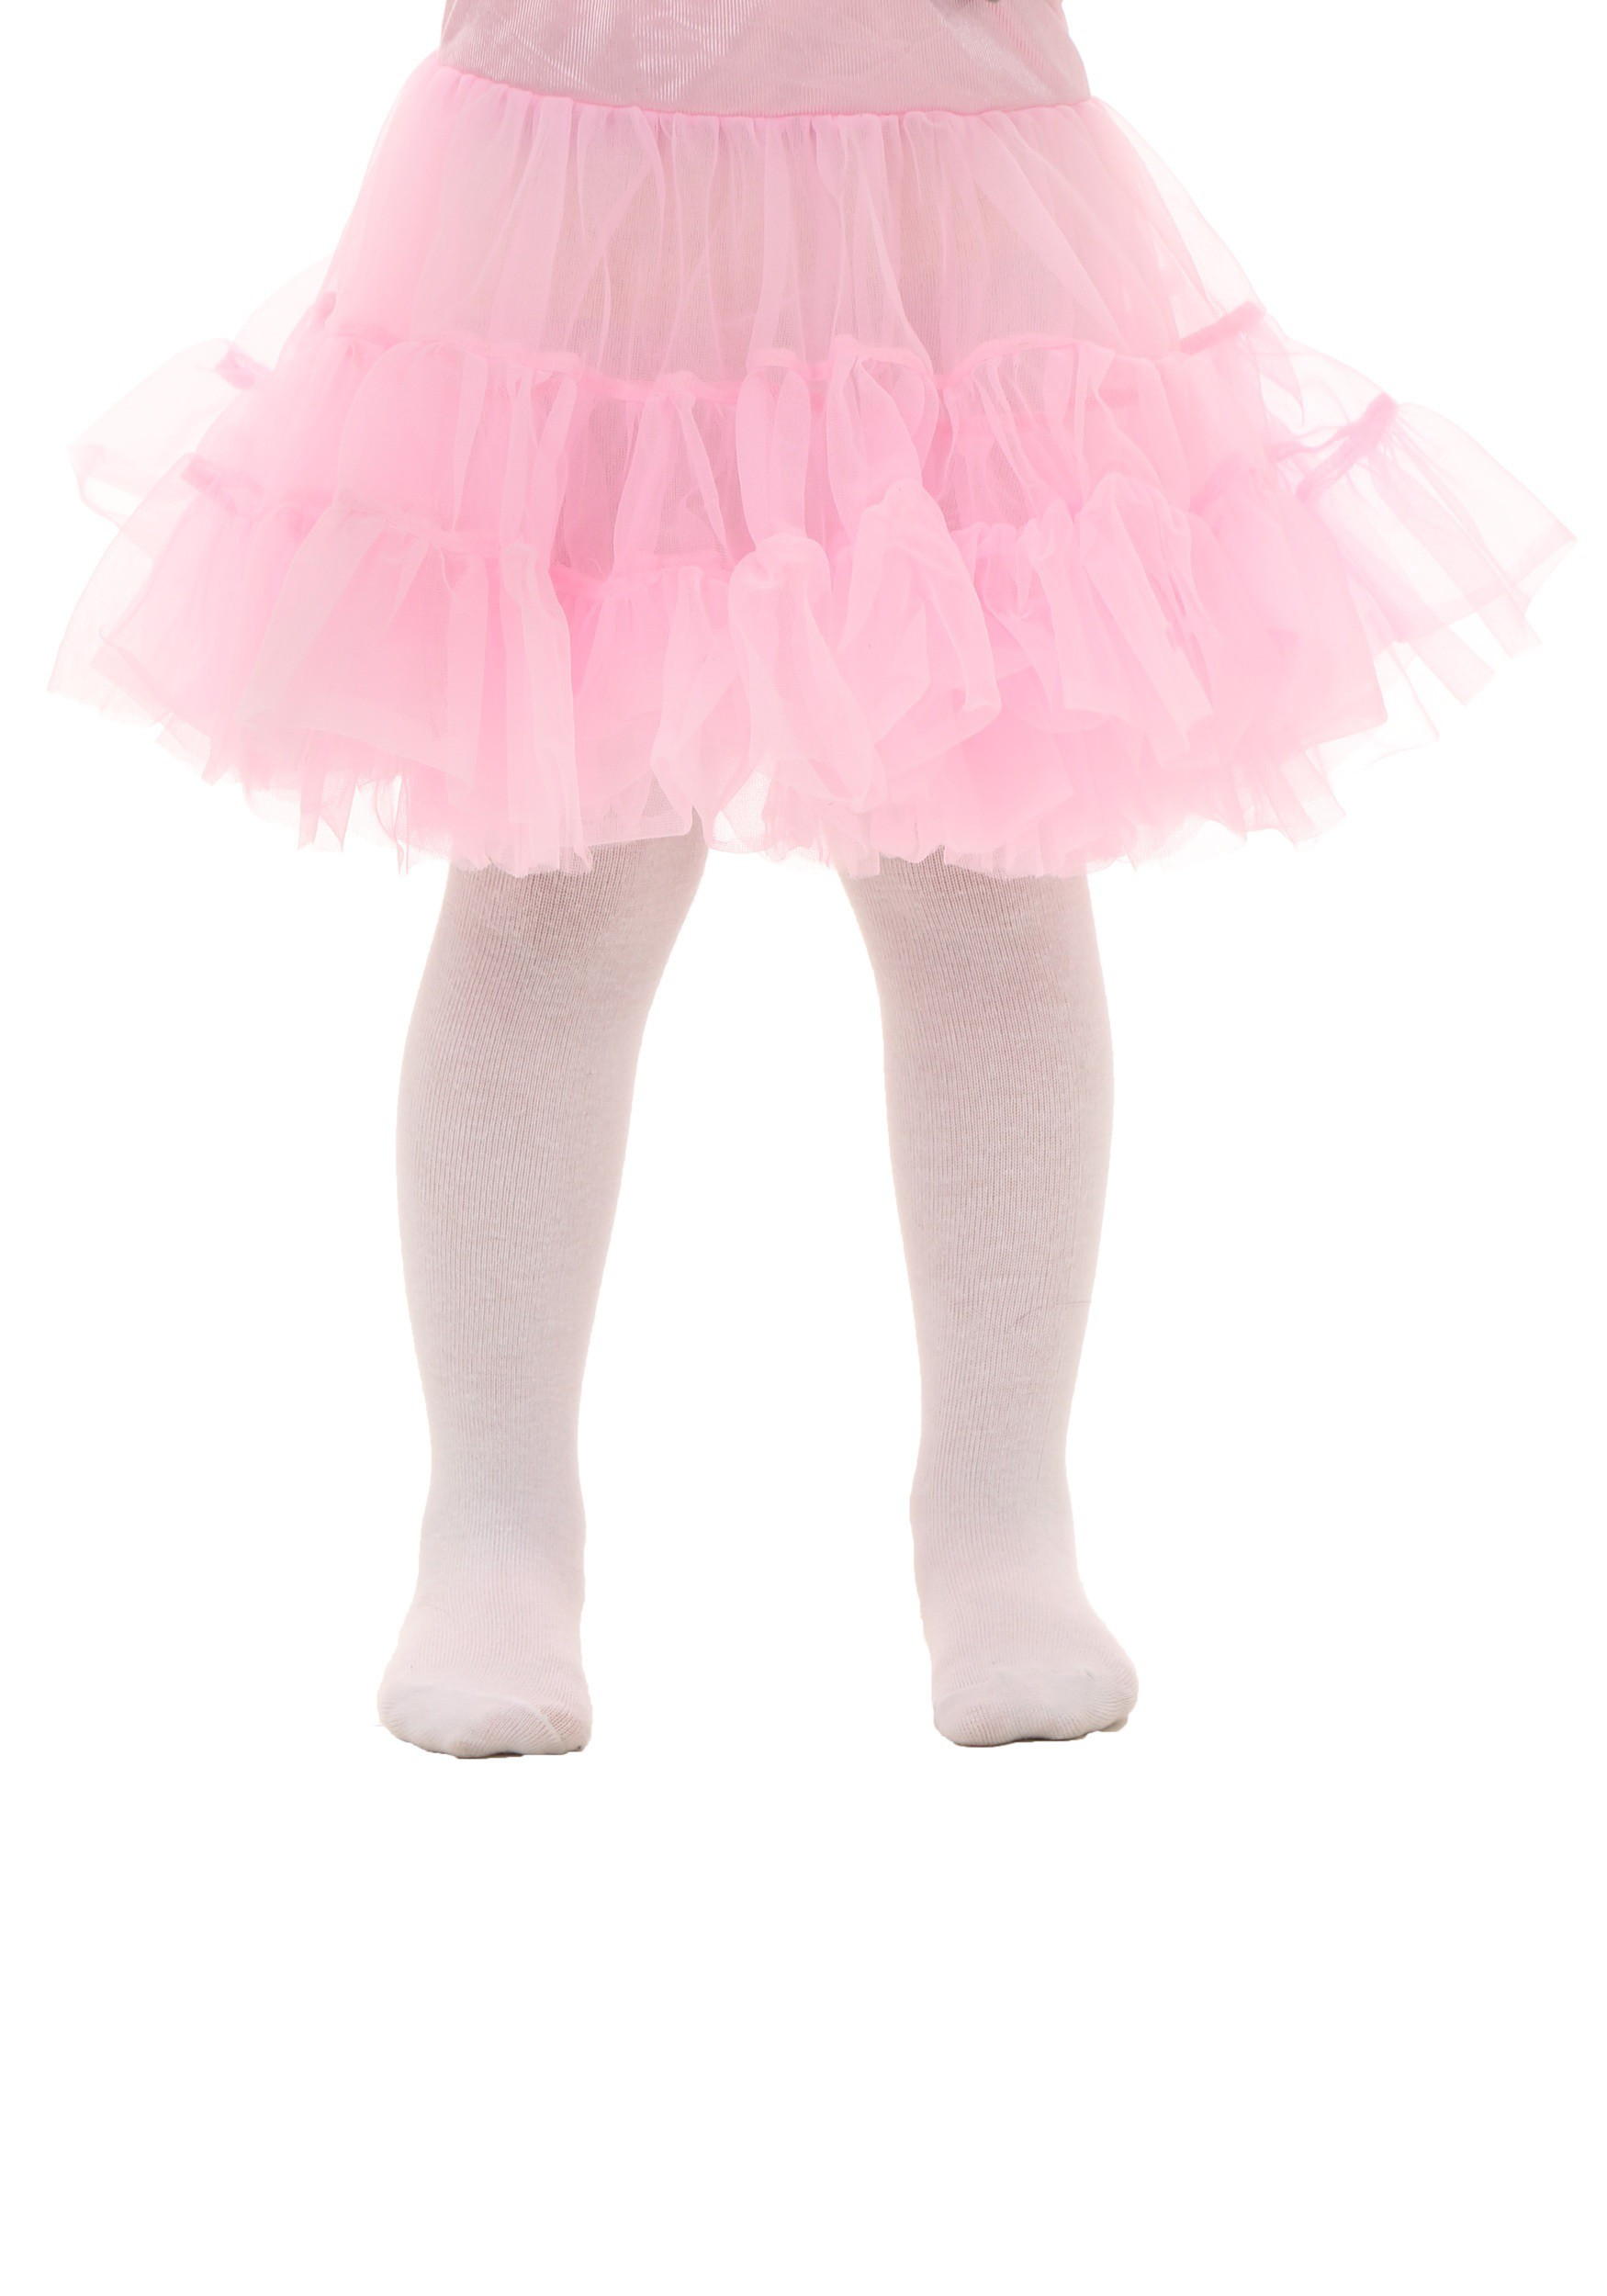 INOpets.com Anything for Pets Parents & Their Pets Toddler Pink Knee Length Crinoline